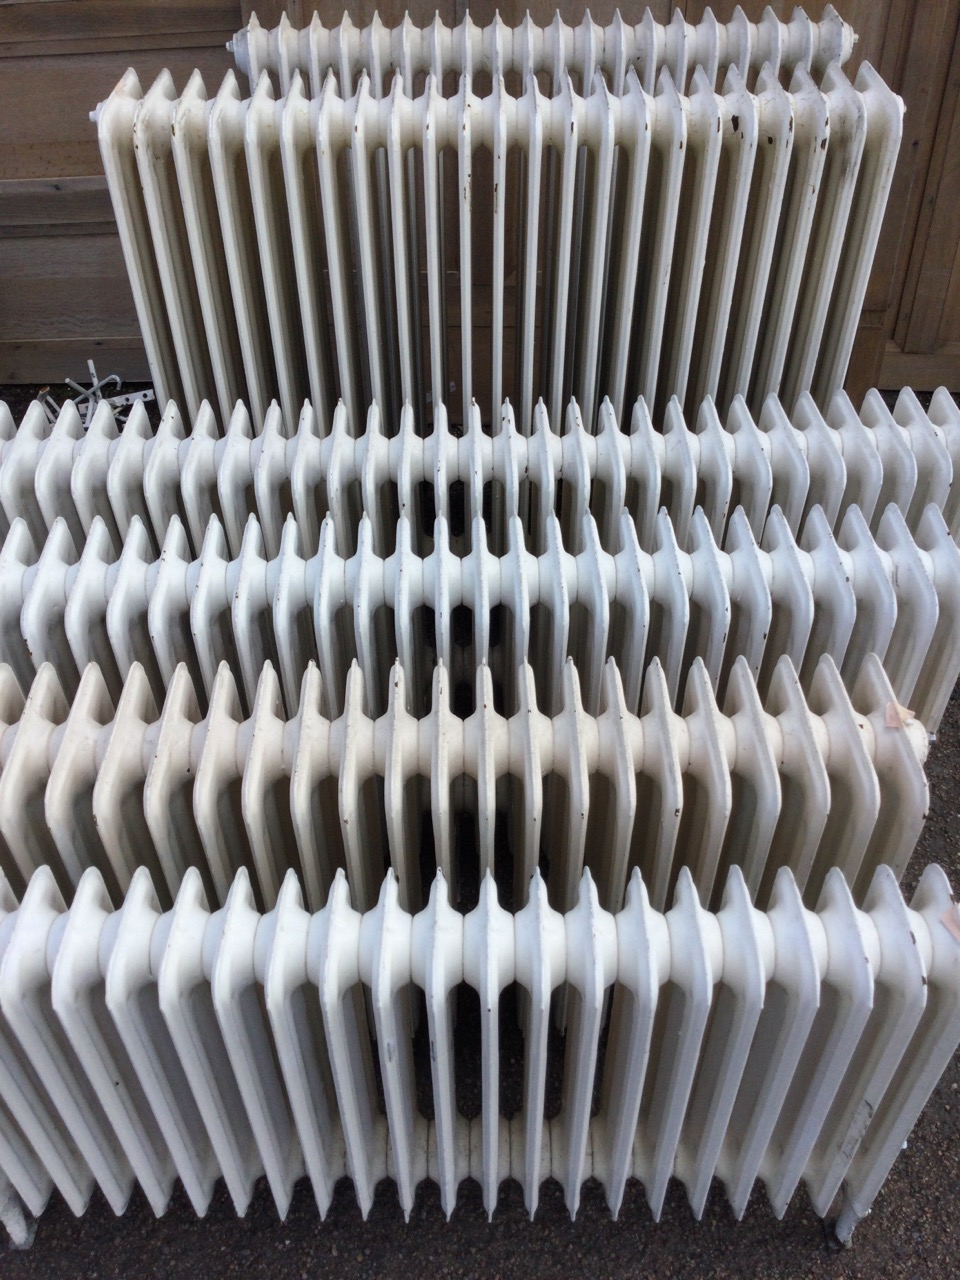 Six miscellaneous cast iron radiators, the panels on angled legs - various heights & lengths, and - Image 2 of 3